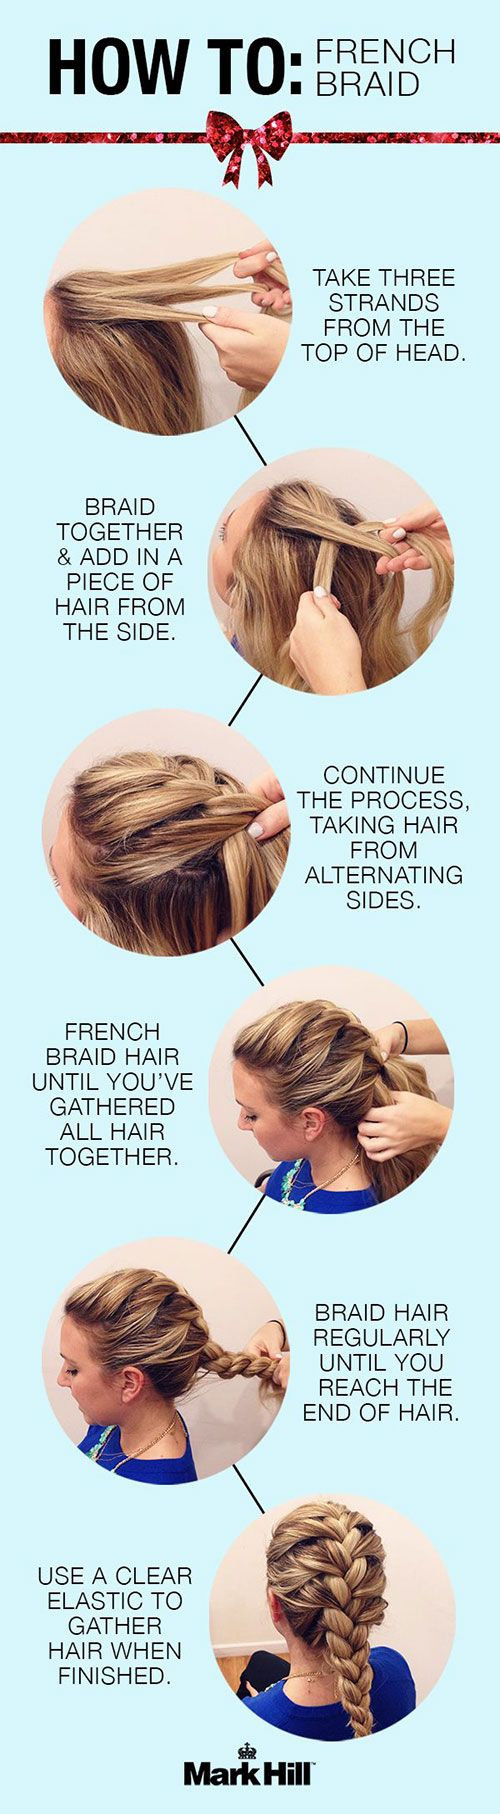 Find This Pin And More On Braids How To French